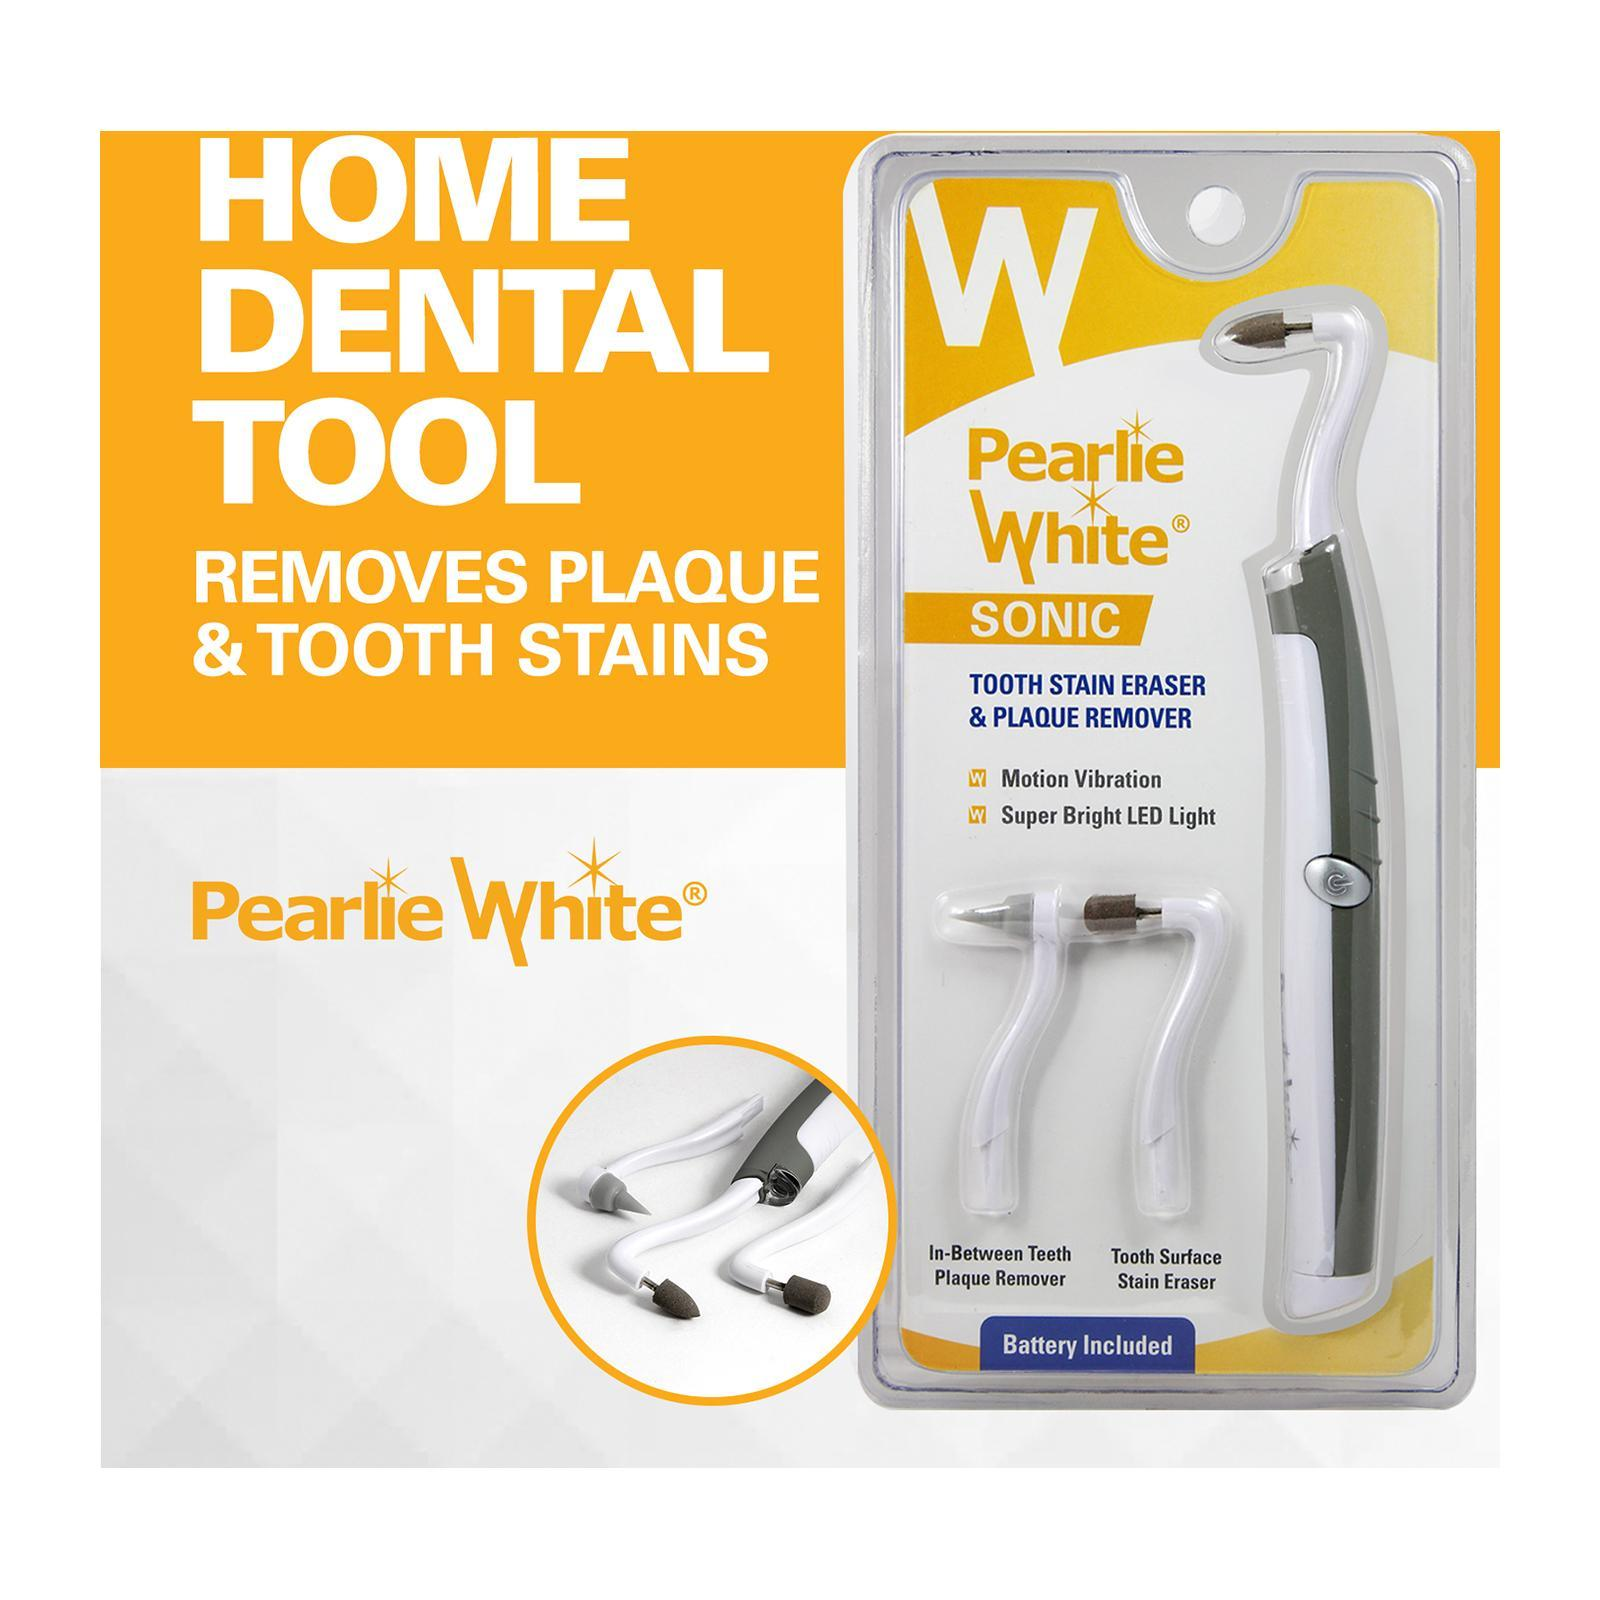 Pearlie White Sonic Tooth Stain Eraser And Plaque Remover